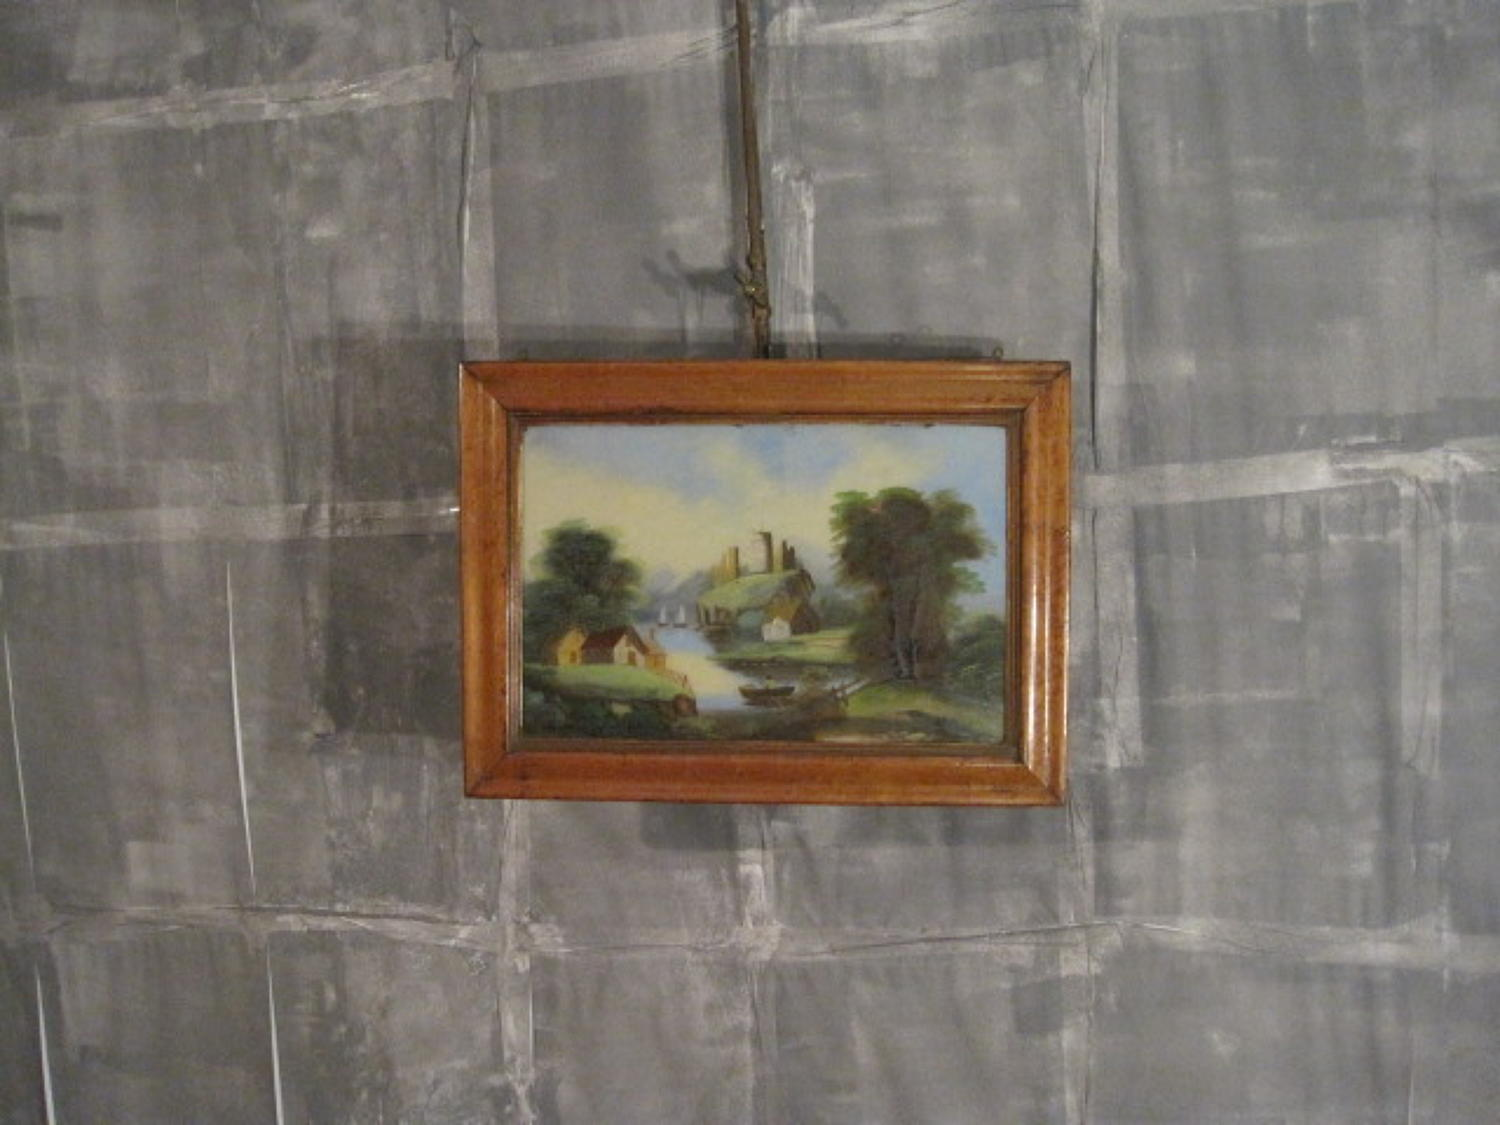 English naive painting on glass